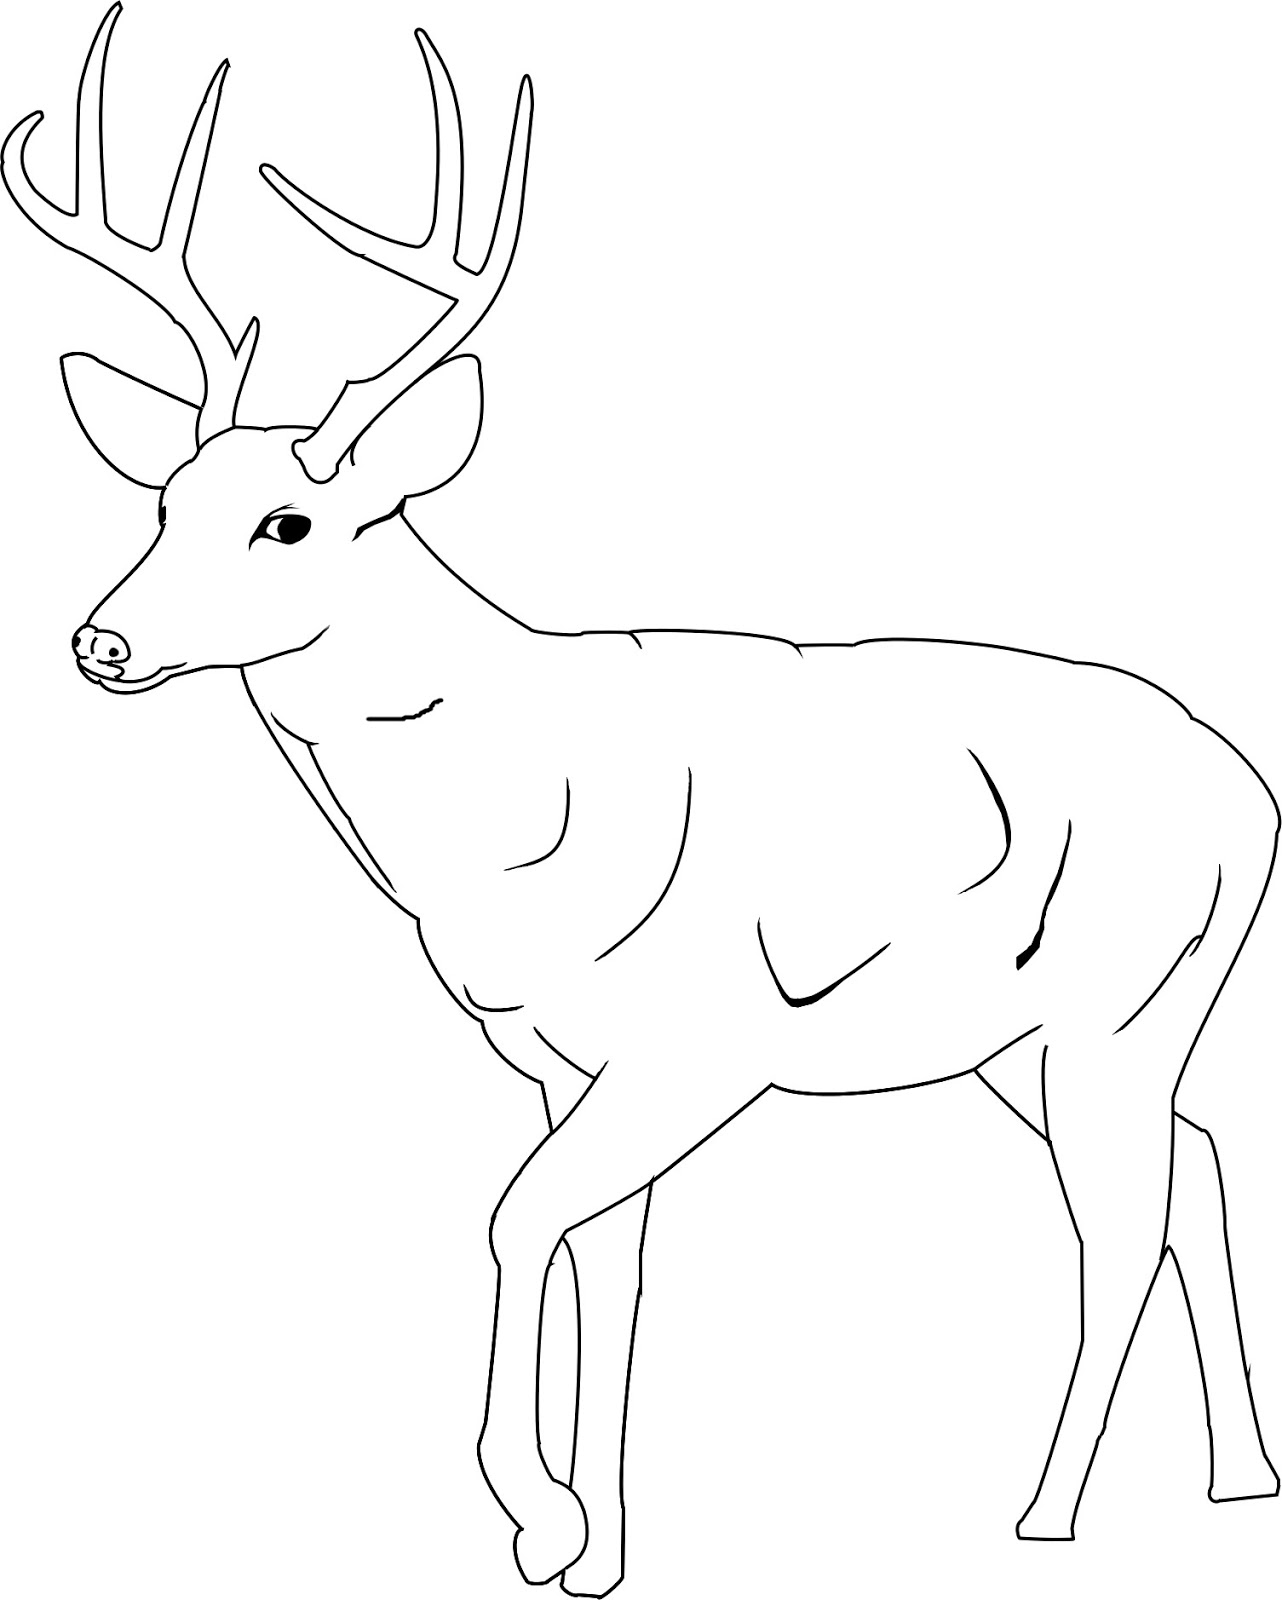 image regarding Printable Deer Pictures named Deer Antler Coloring Web pages at  Cost-free for